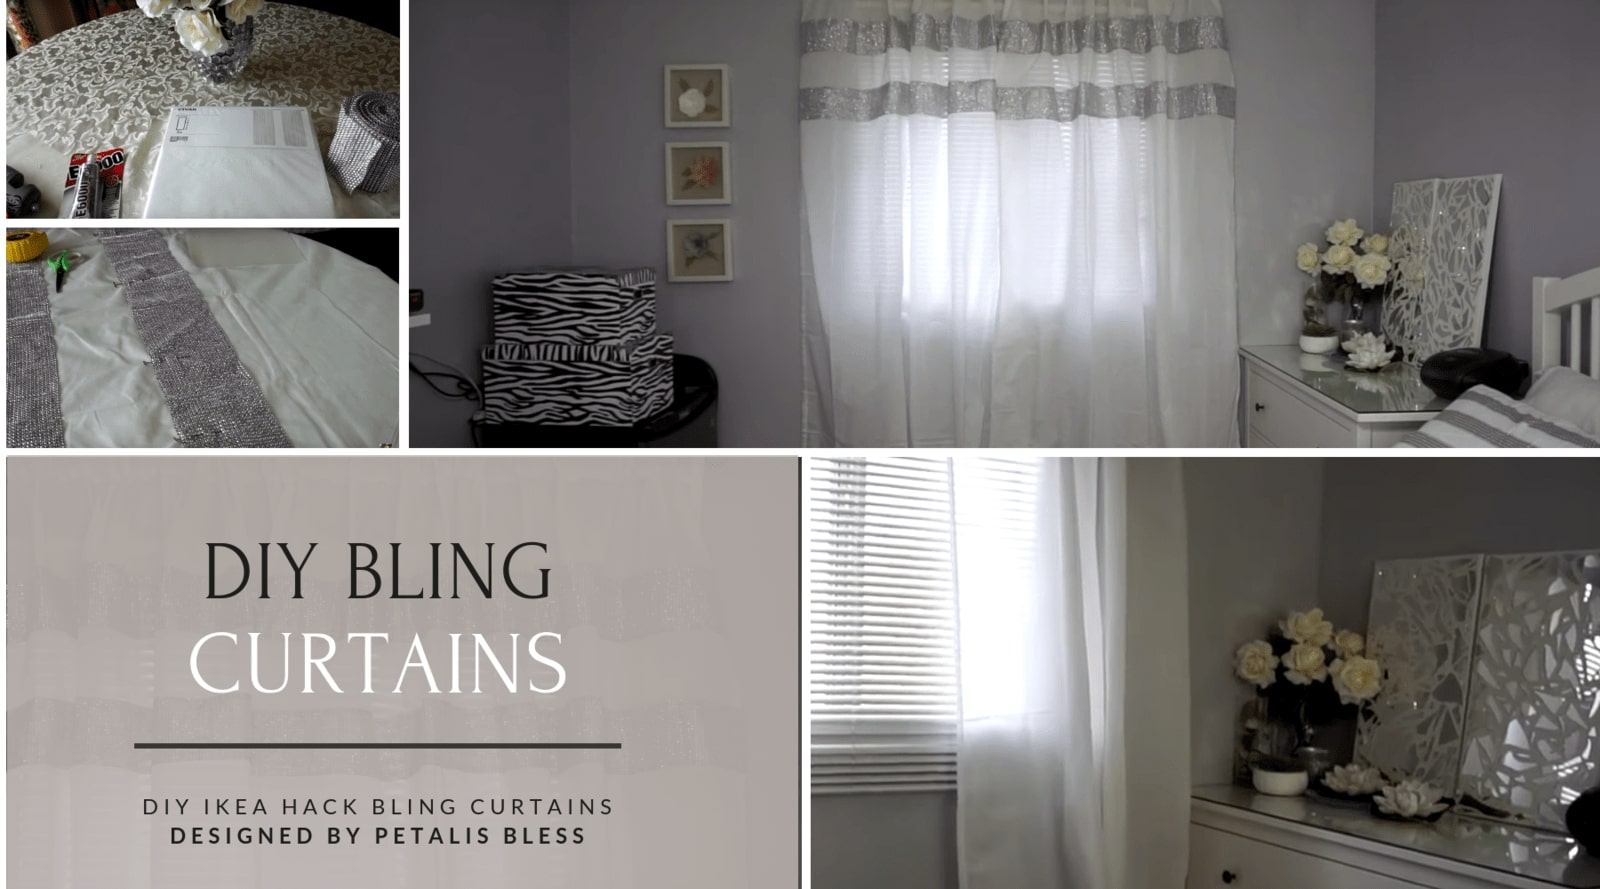 Petalis Bless Ikea Hack DIY Bling Curtains